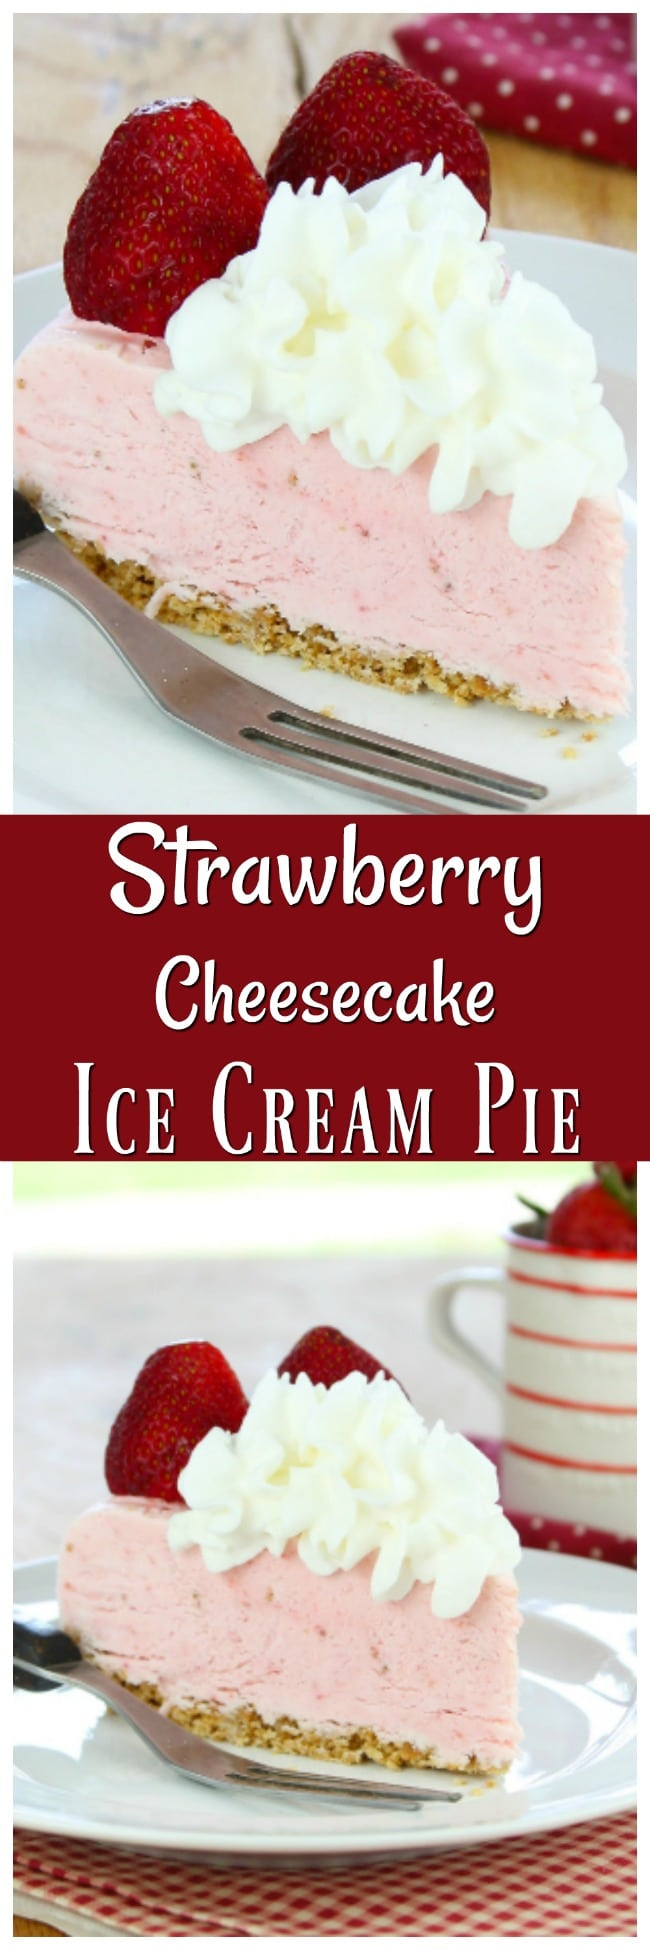 Strawberry-Cheesecake-Ice-Cream-Pie-Plated-Photo-Collage